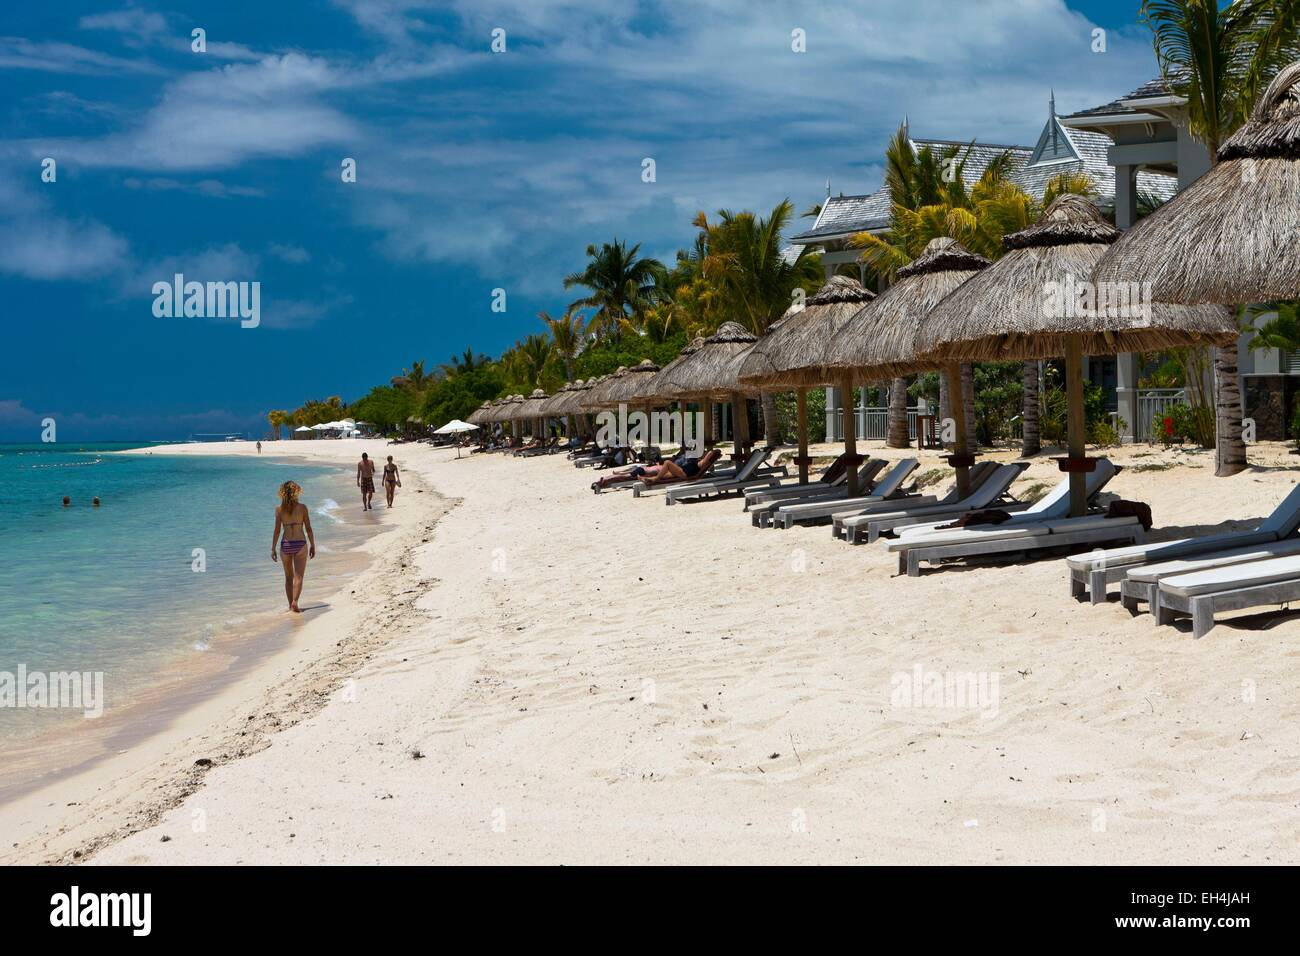 Mauritius, South West Coast, Black River District, the beach of the Hotel St. Regis Mauritius - Stock Image